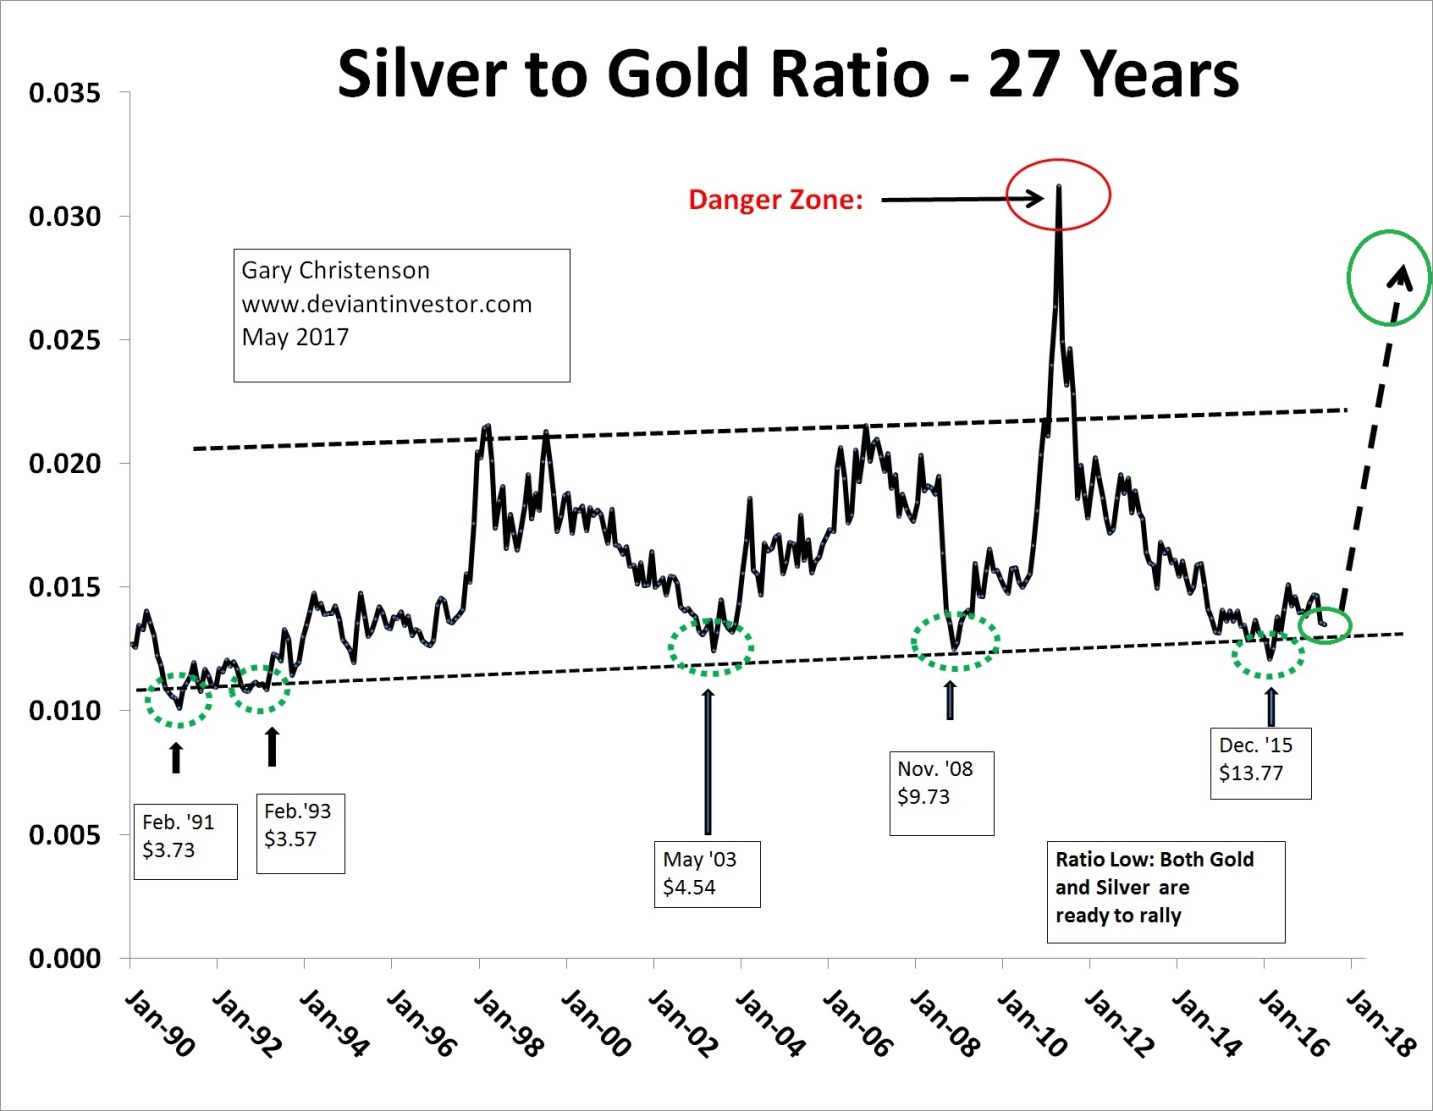 Silver: Gold Ratio - 27 Years